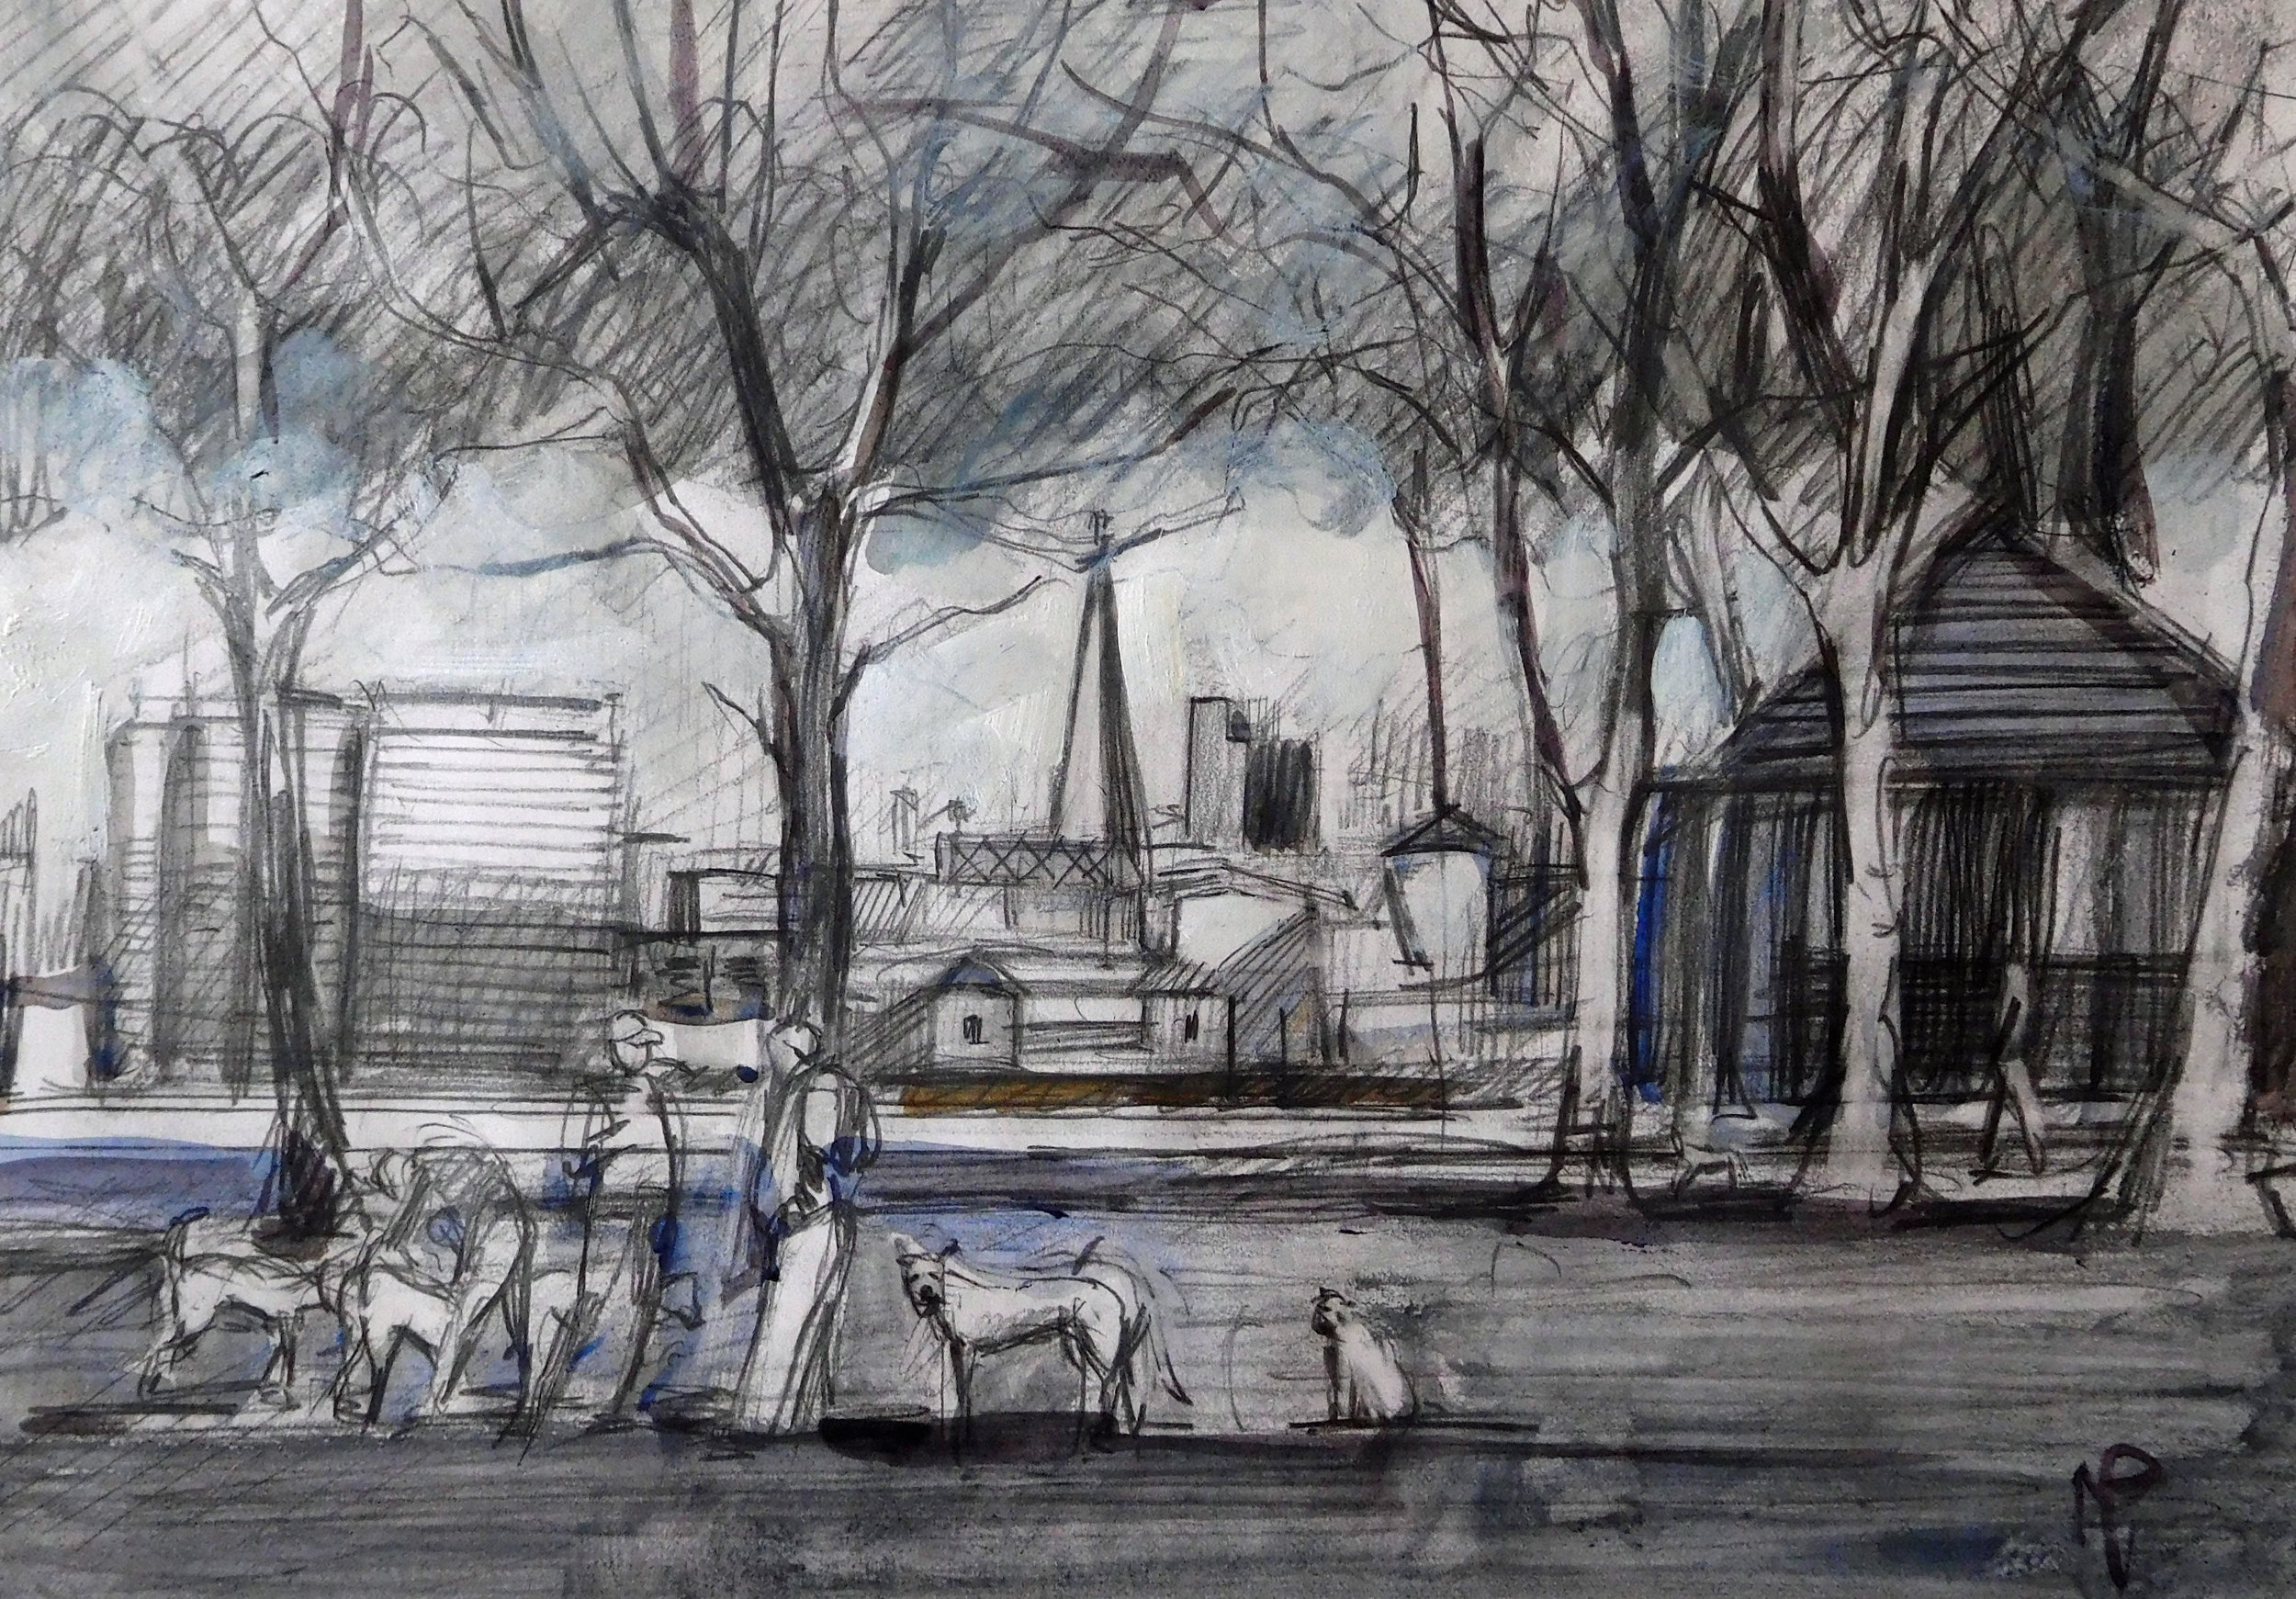 Peckham Art School Workshop - 14.00 - 16.00Ruskin Park, SE5 8ELPeckham Art School will be running two art workshops on consecutive Saturday afternoons with local artist Mark Pearson in Ruskin Park. The aim will be to complete a picture each week based on what we observe in the environment. In the first week participants will work with pencil and ink. Suitable for all levels, adults only, price includes paper, pencils, ink and brushes.£15 - Book here